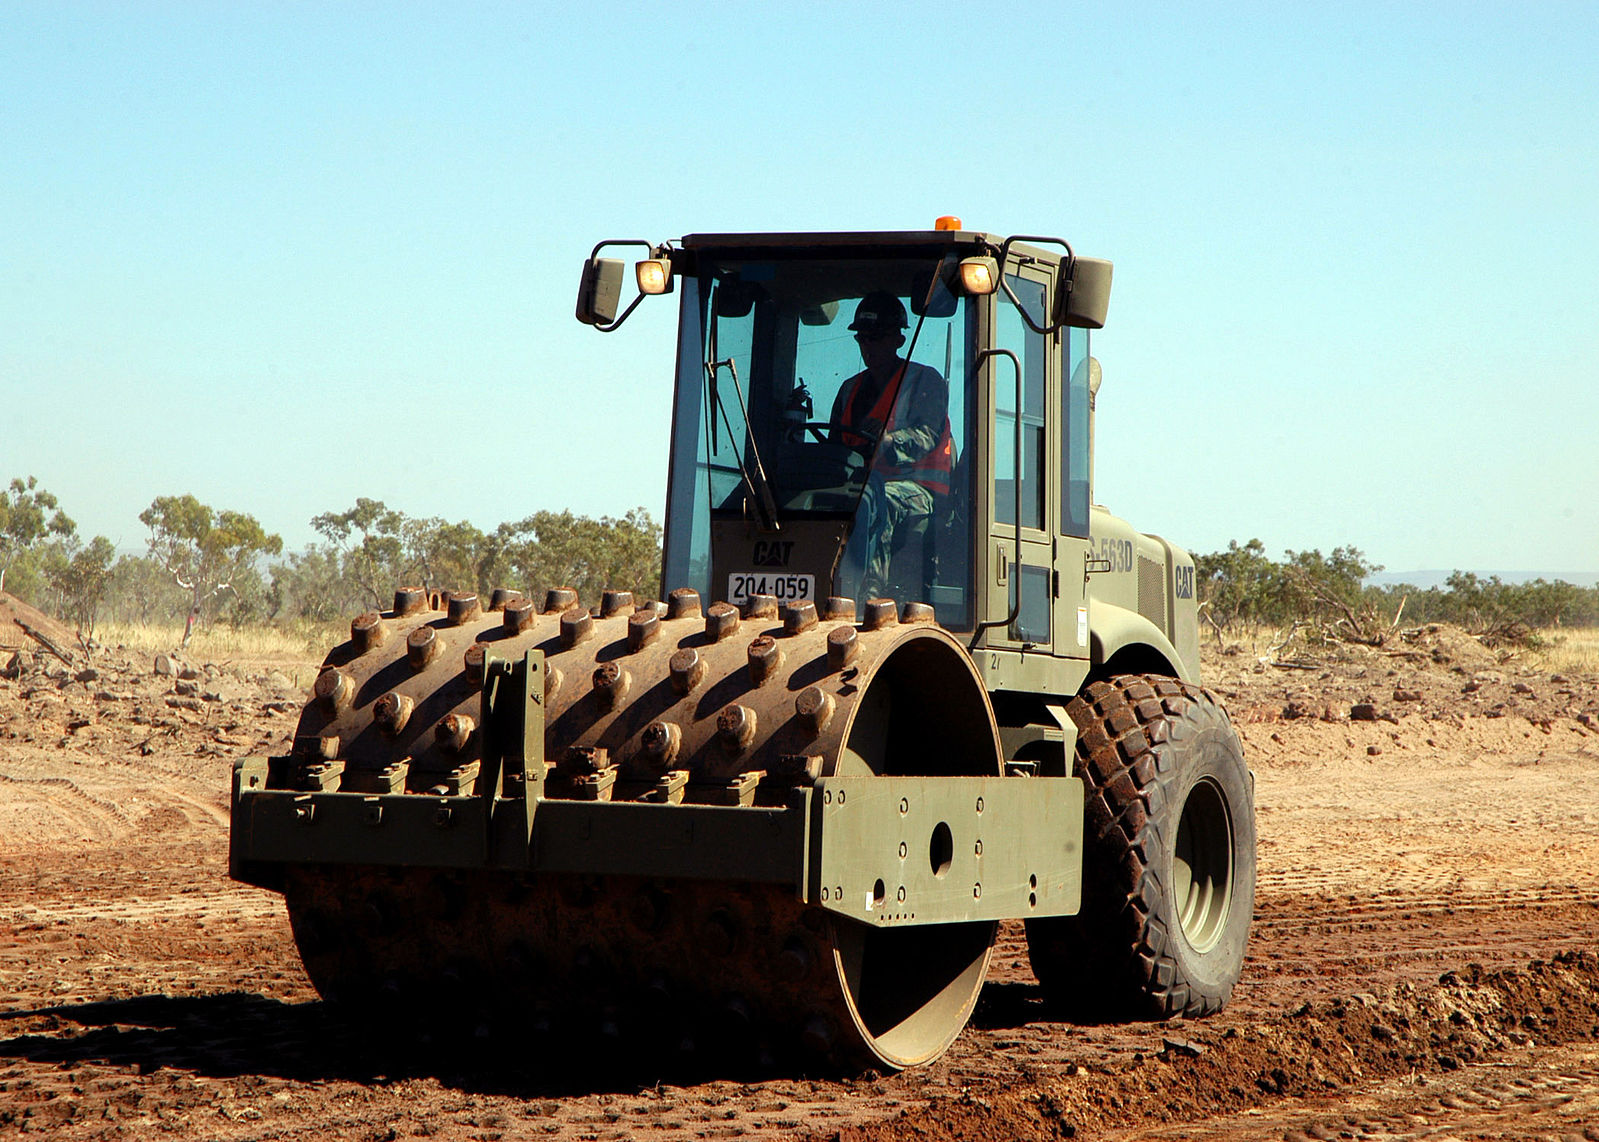 1599px-Seabees compactor roller